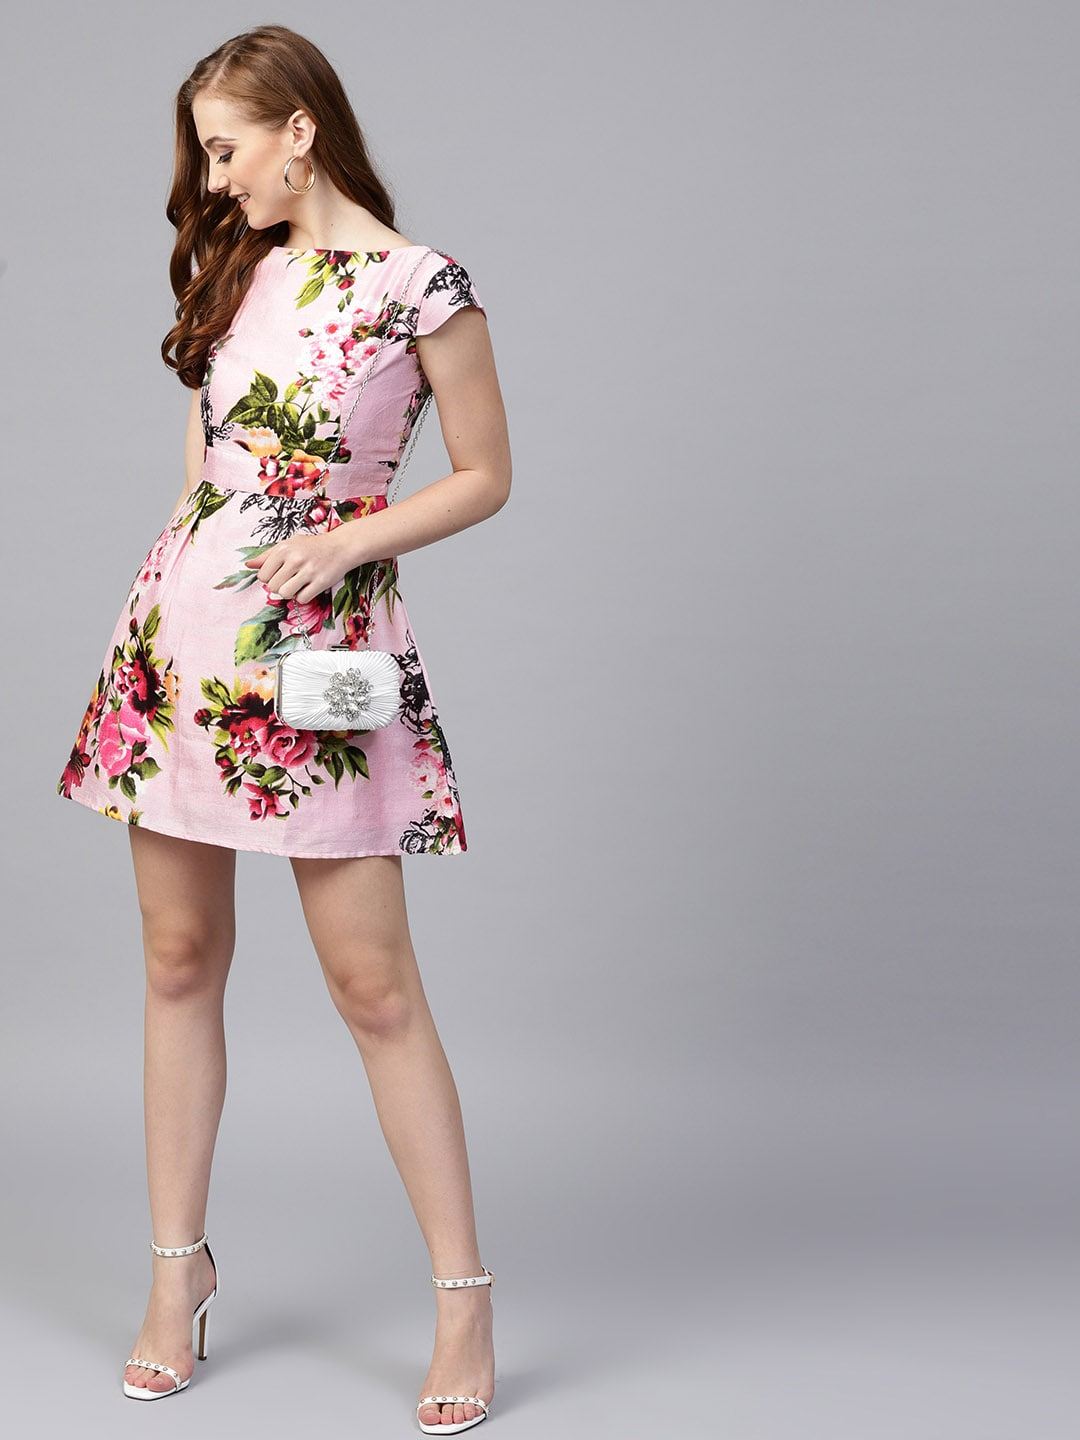 Floral Dresses - Buy Floral Print Dress Online in India  35e97ea3a